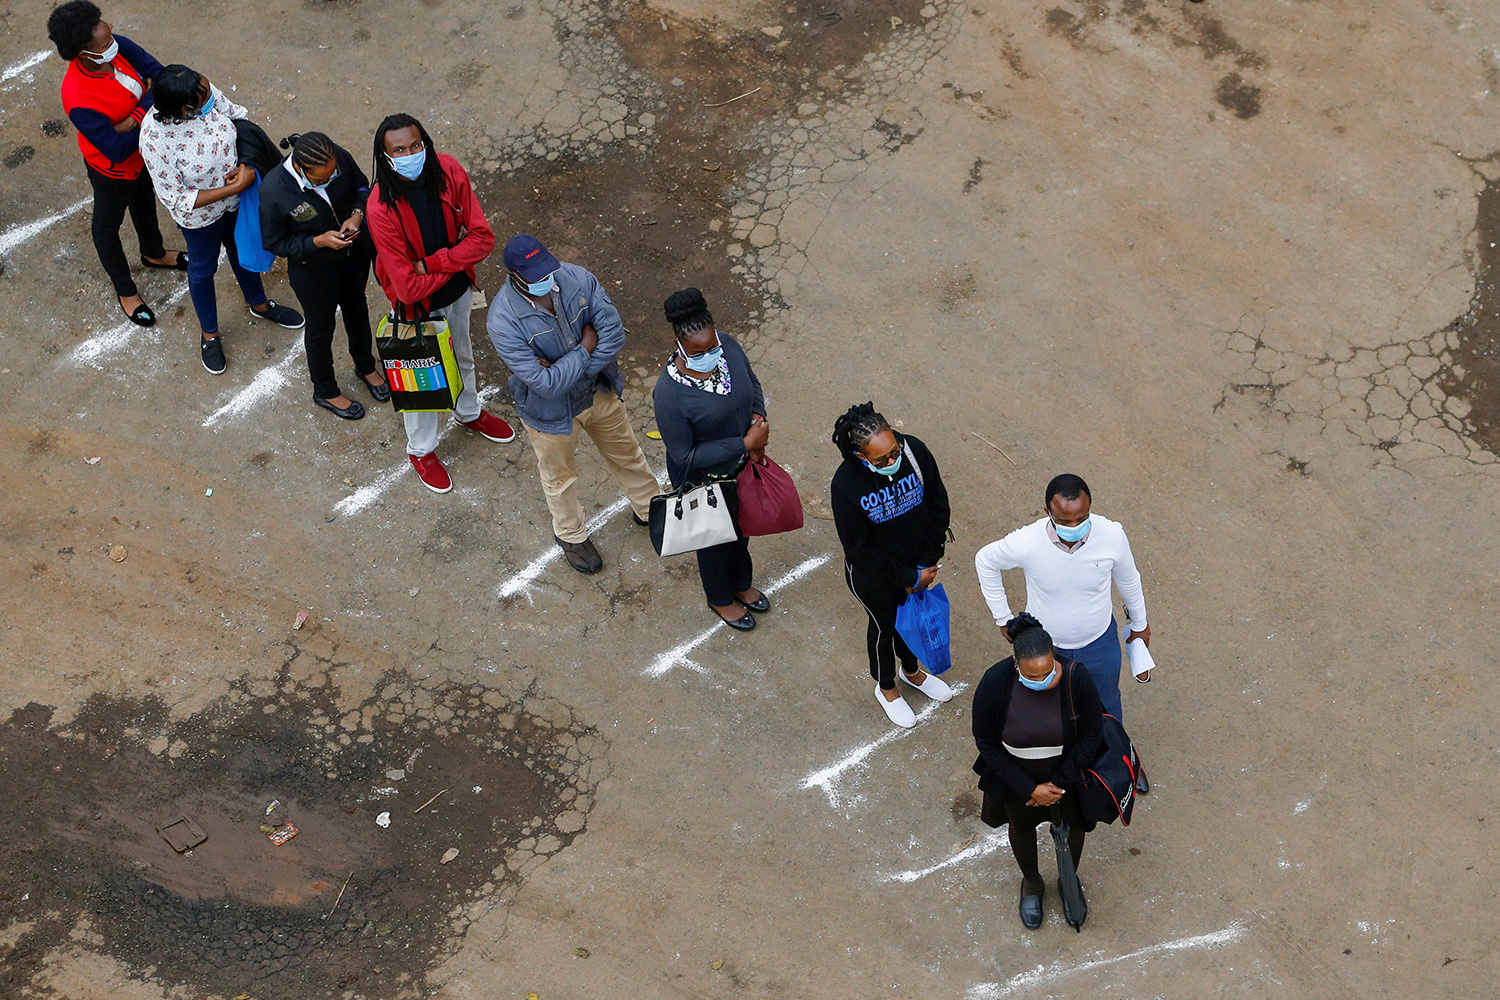 The photo shows several people standing in a line, separating themselves according to lines marked on the ground.